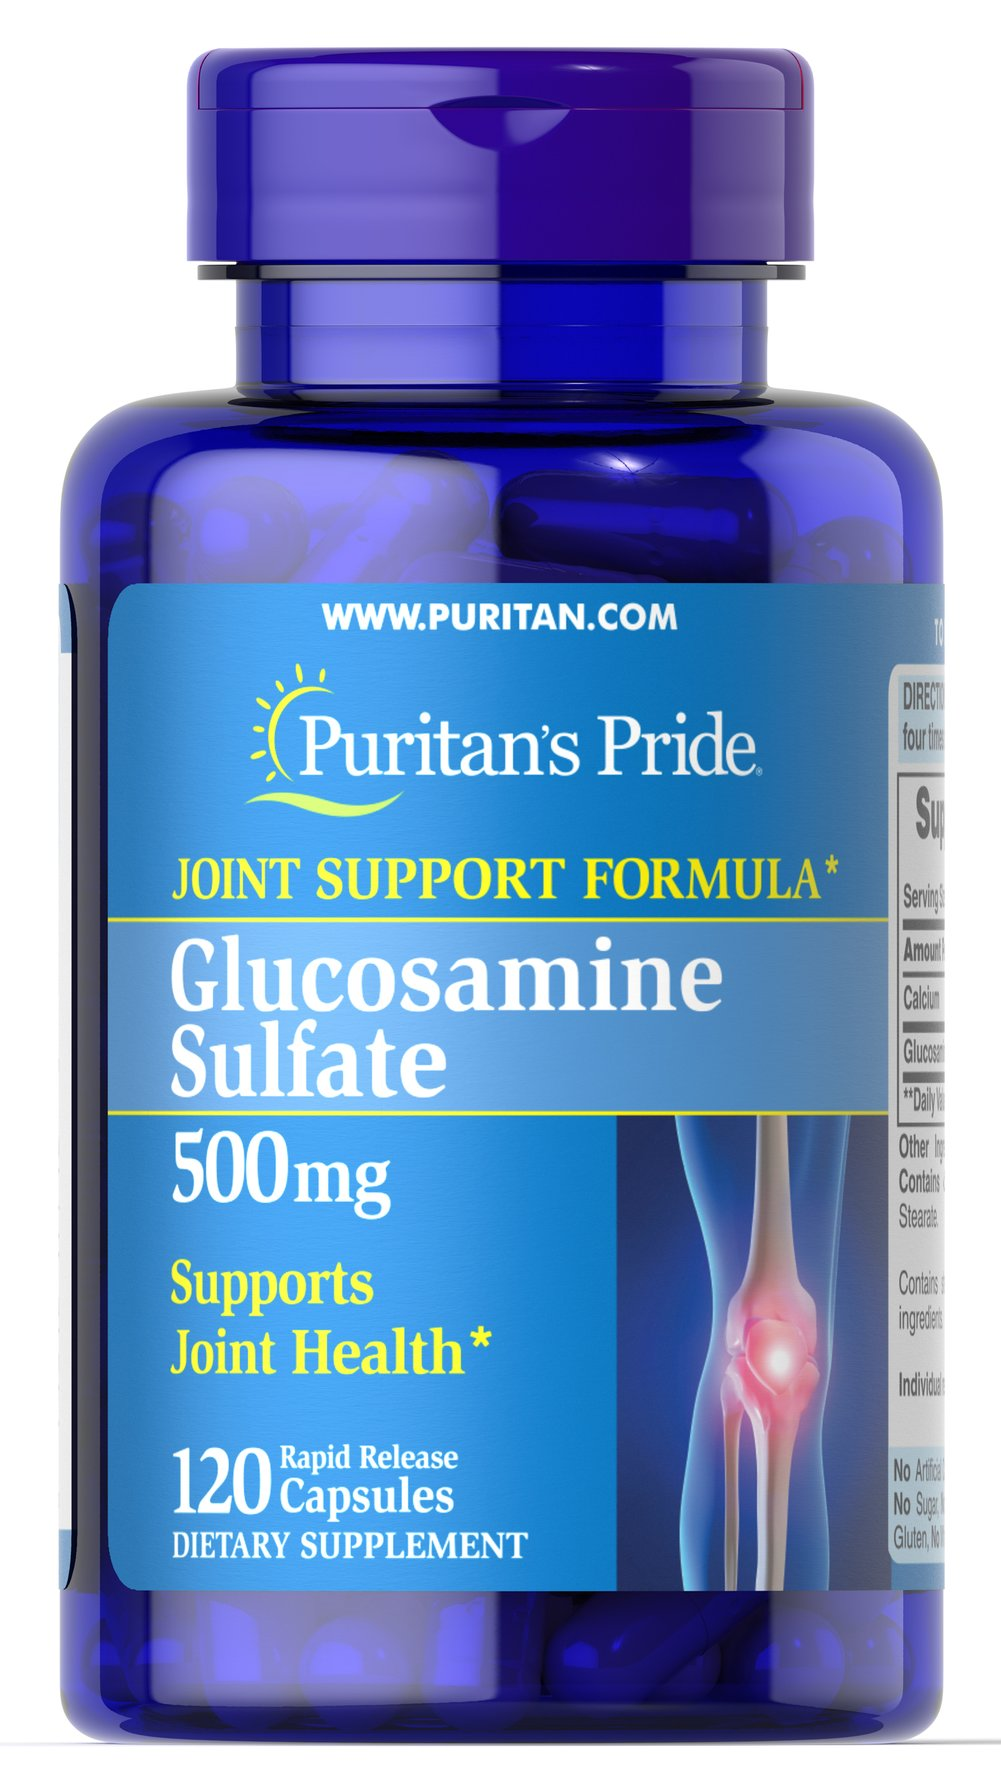 Glucosamine Sulfate 500 mg Thumbnail Alternate Bottle View